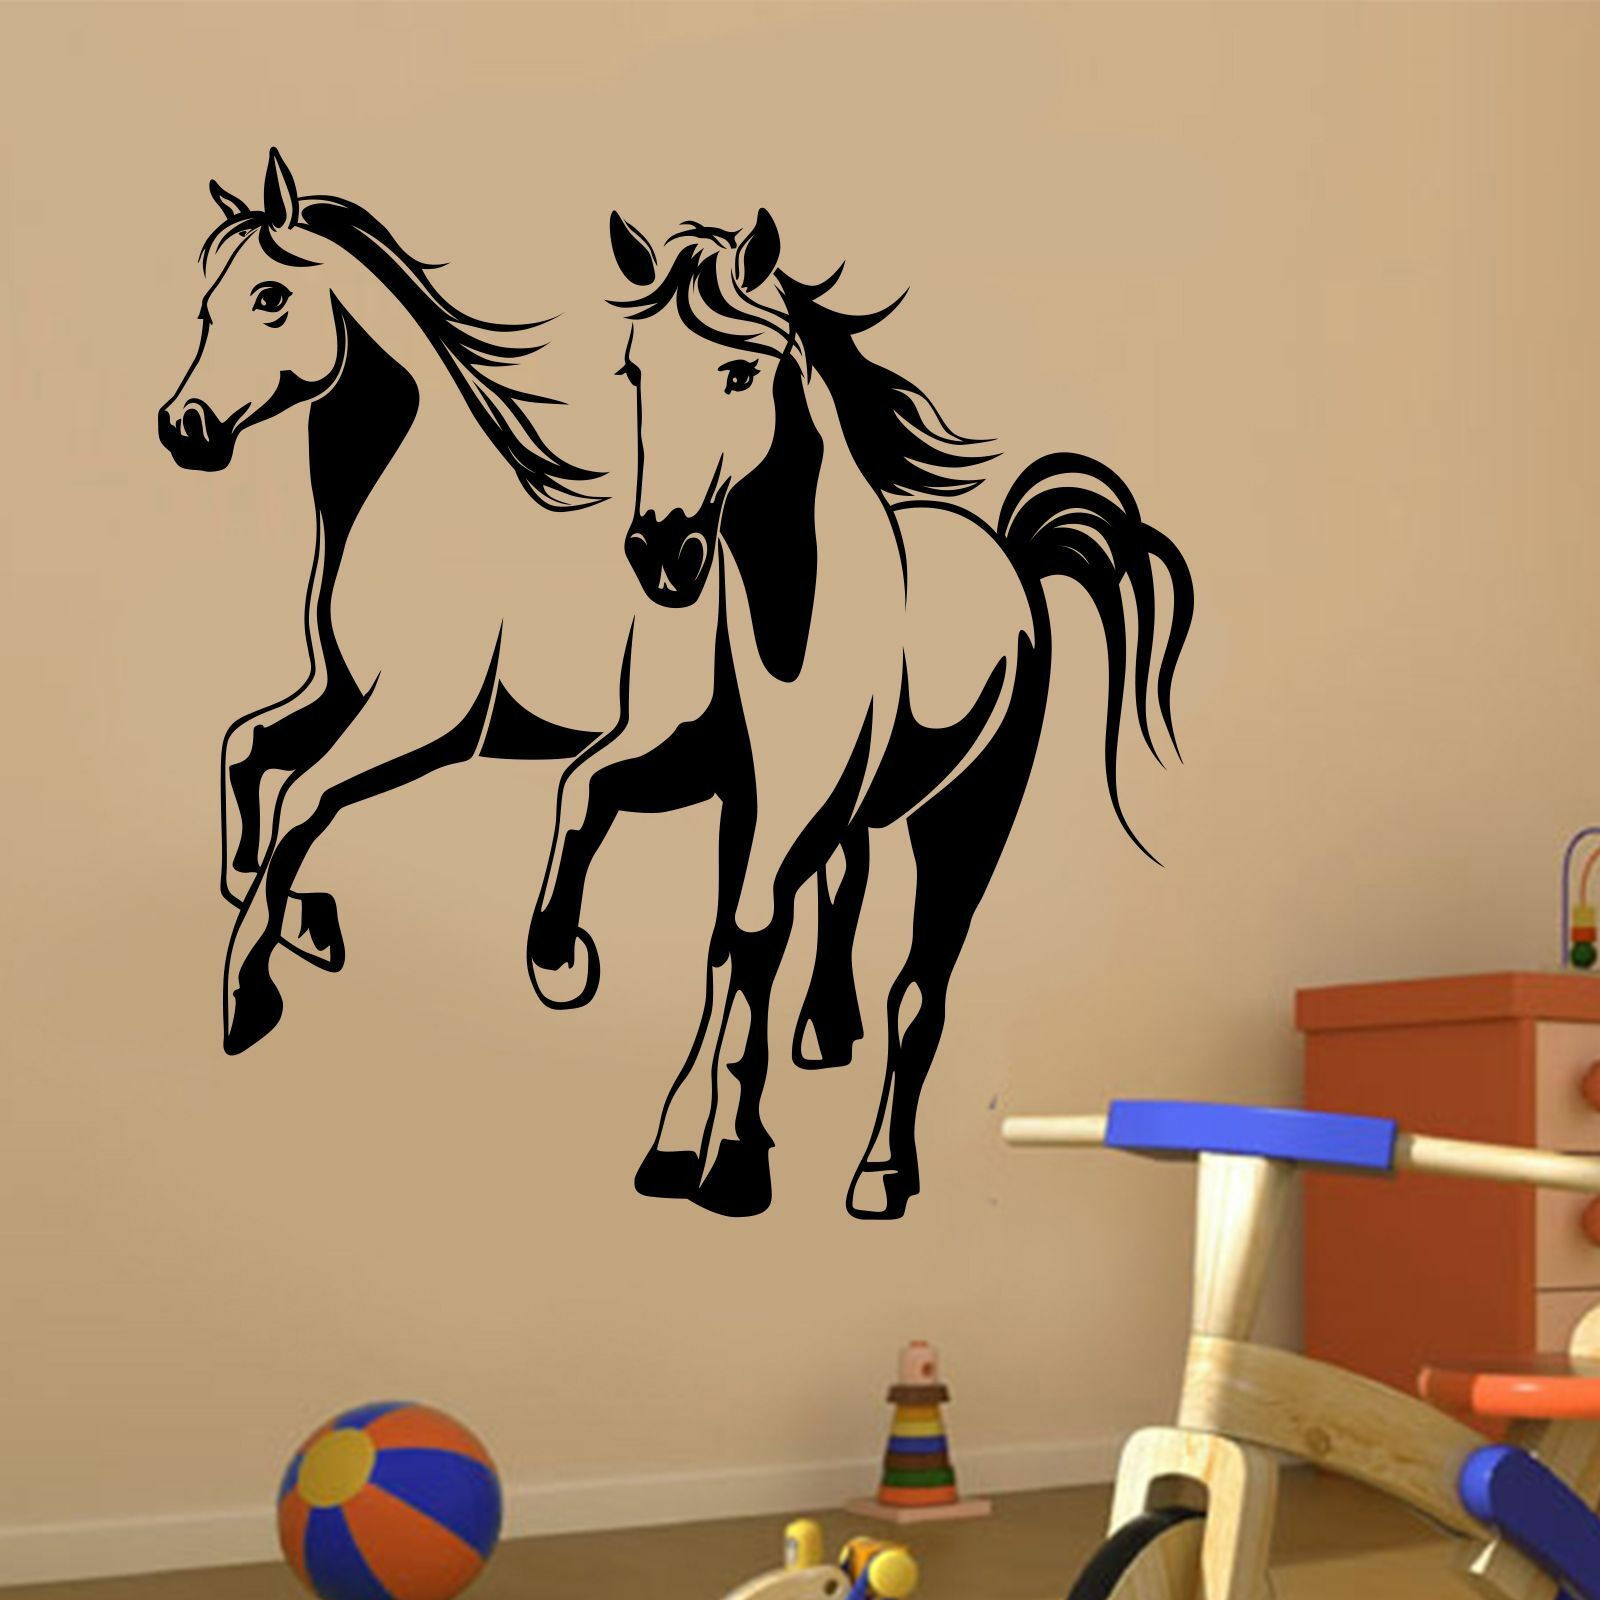 pferde gallopierend wandtattoo aufkleber kinderzimmer. Black Bedroom Furniture Sets. Home Design Ideas